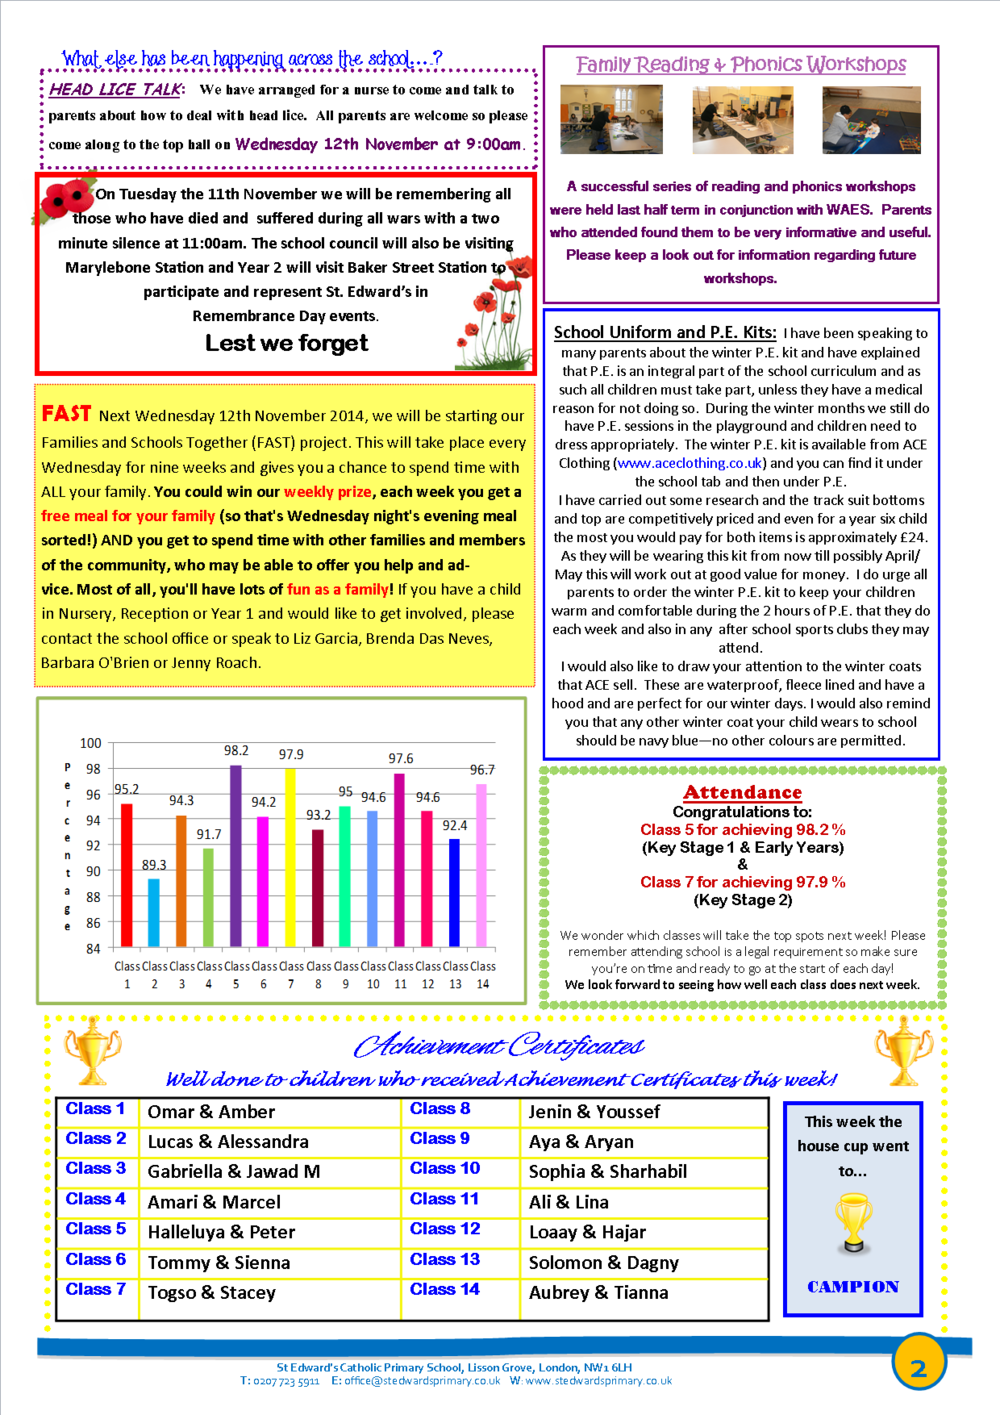 2St Edward's Newsletter Issue 8 7 November 2014.png